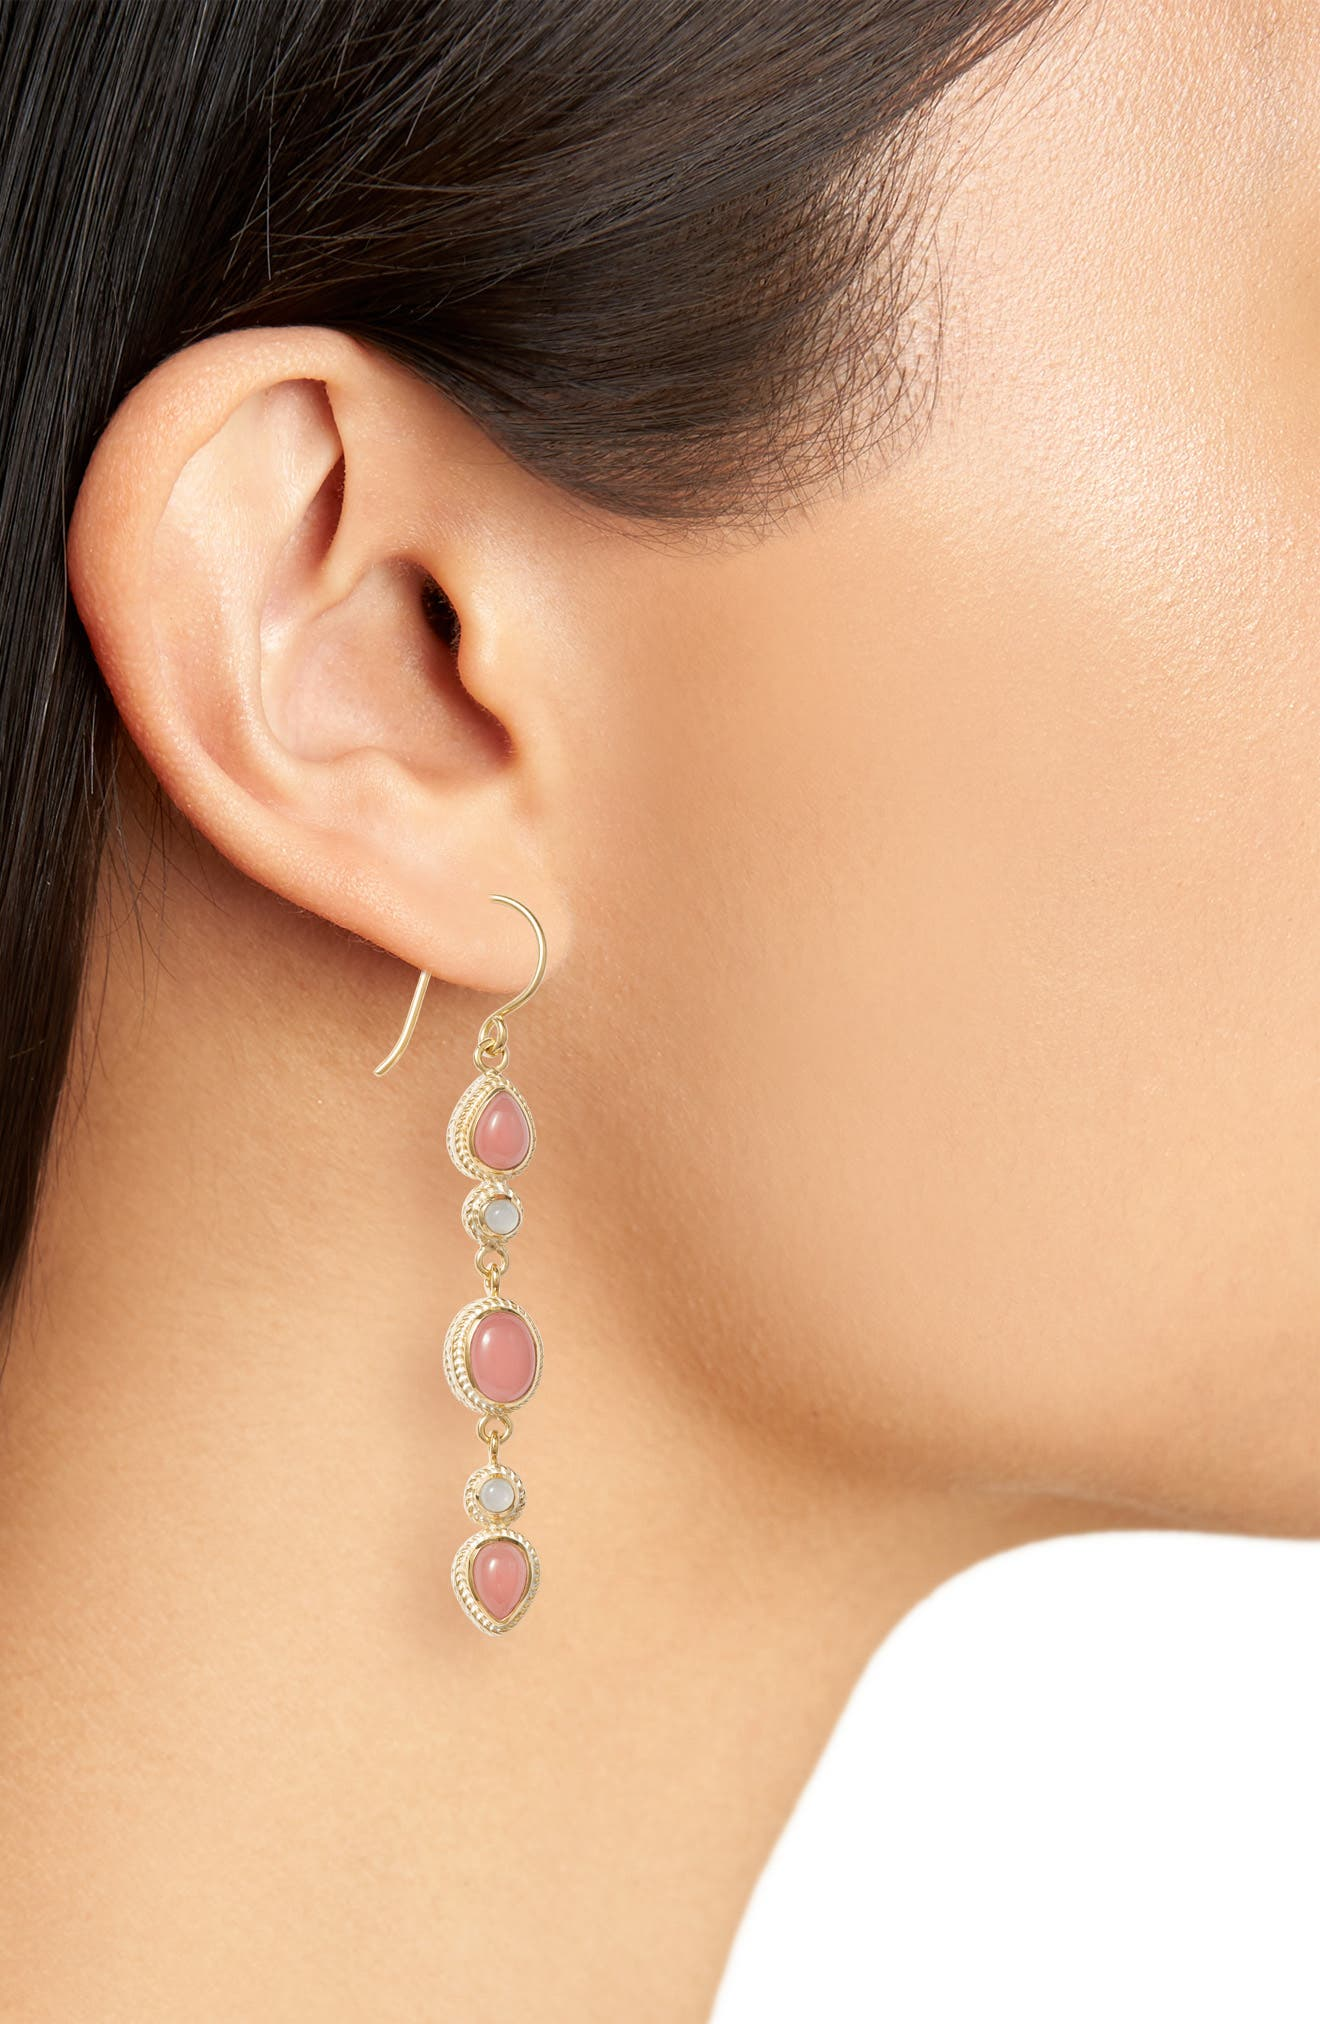 Guava Quartz & Moonstone Linear Drop Earrings,                             Alternate thumbnail 3, color,                             950